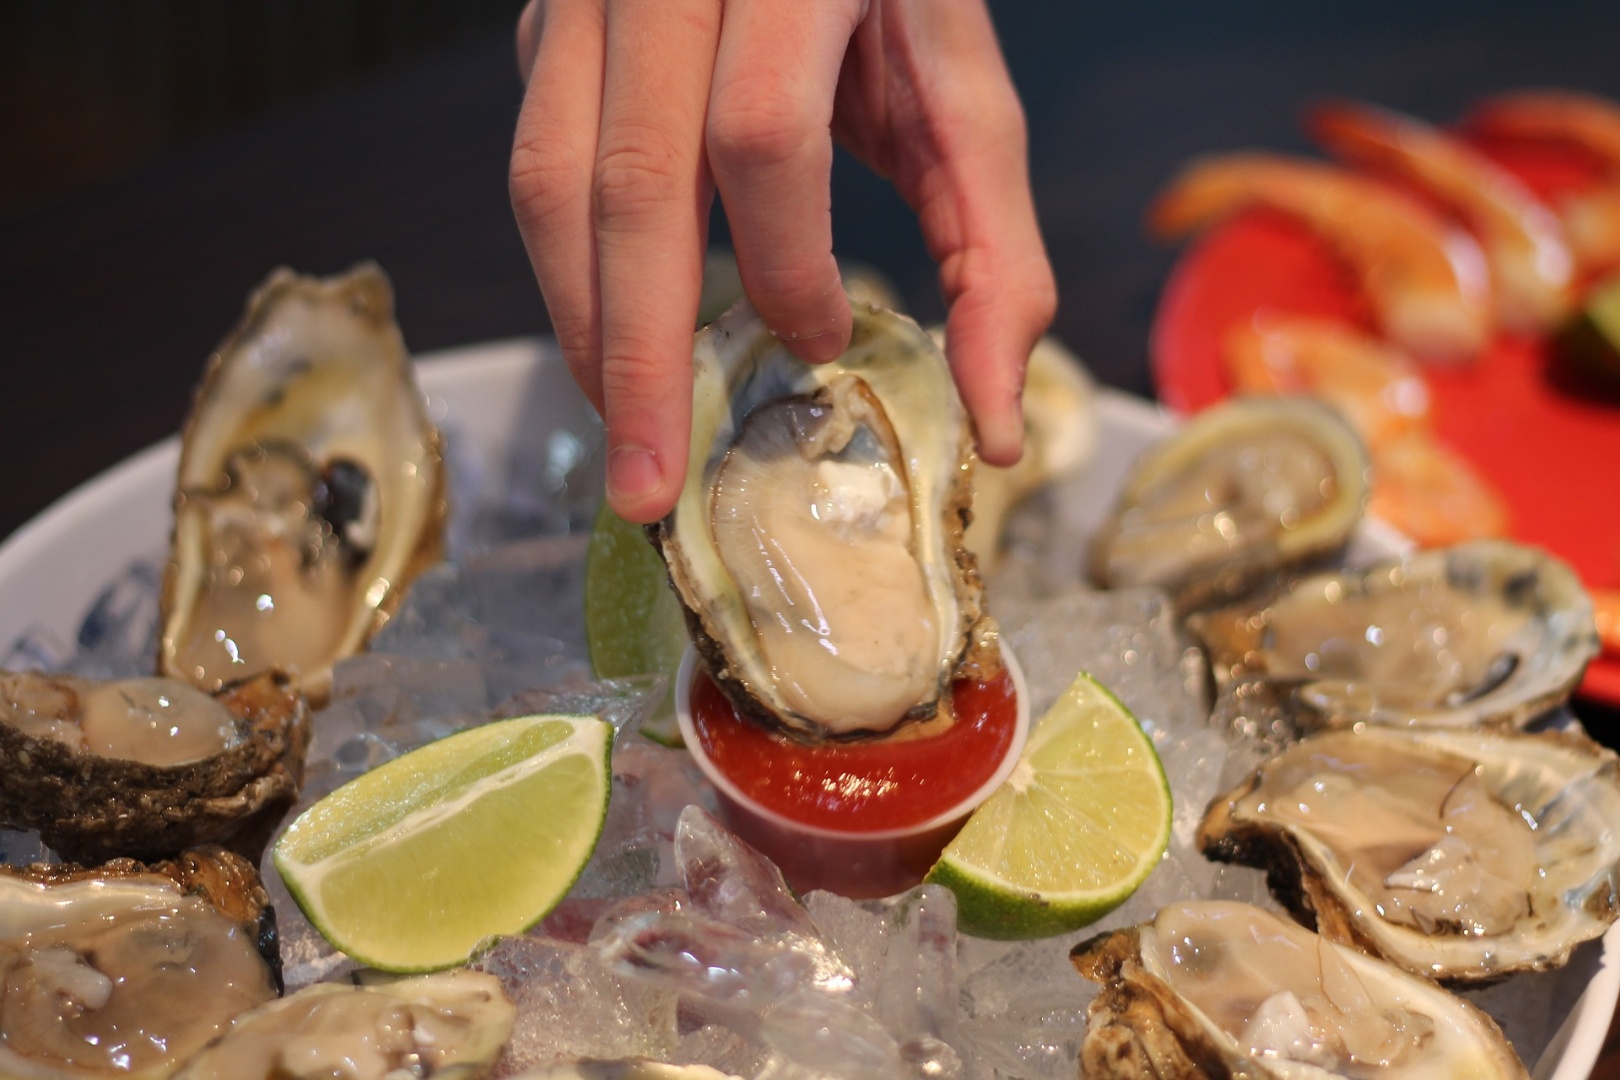 A hand dipping an oyster into sauce